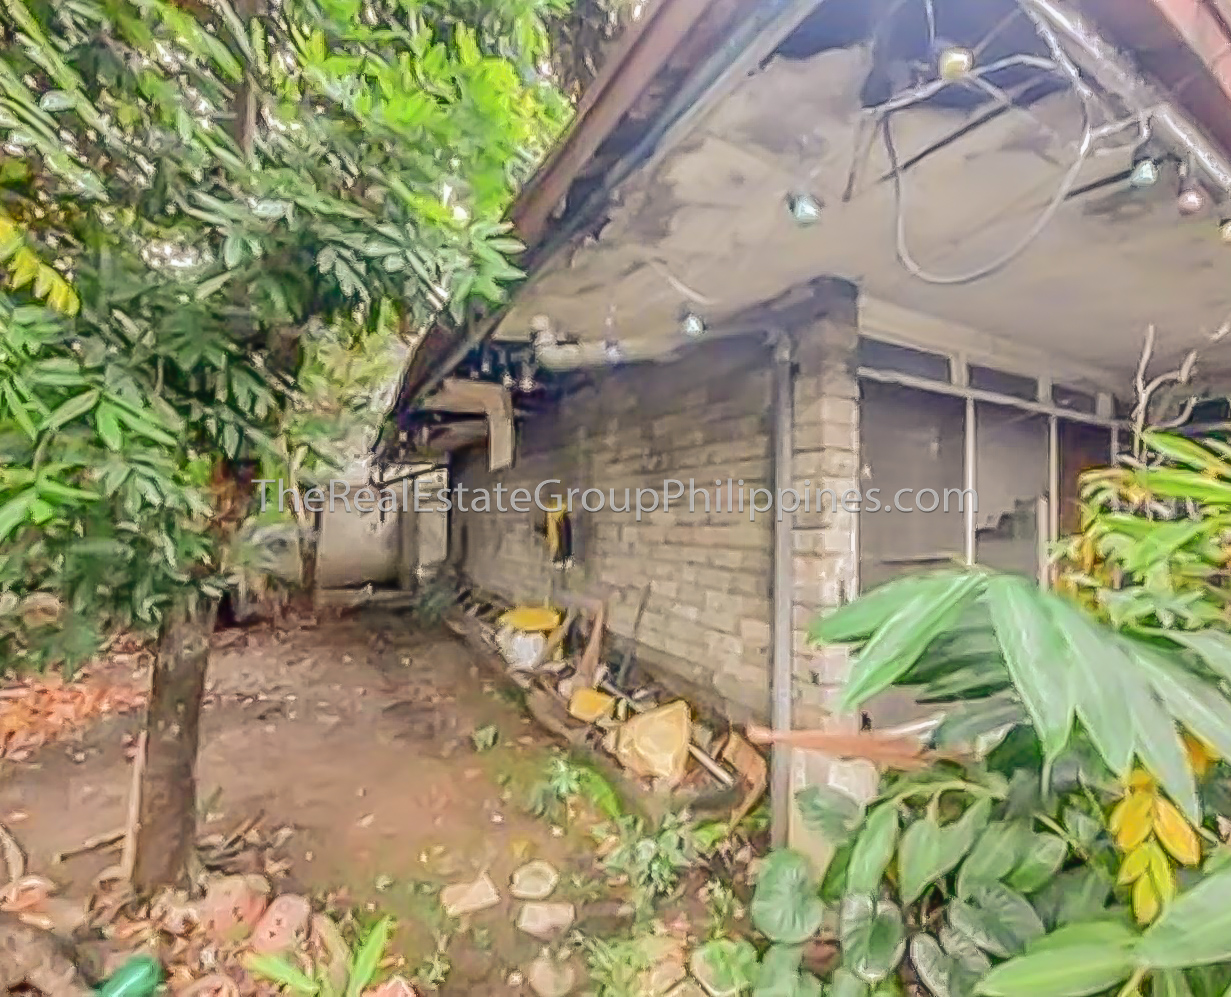 329 Sqm House For Sale, Brgy Olympia Makati-6